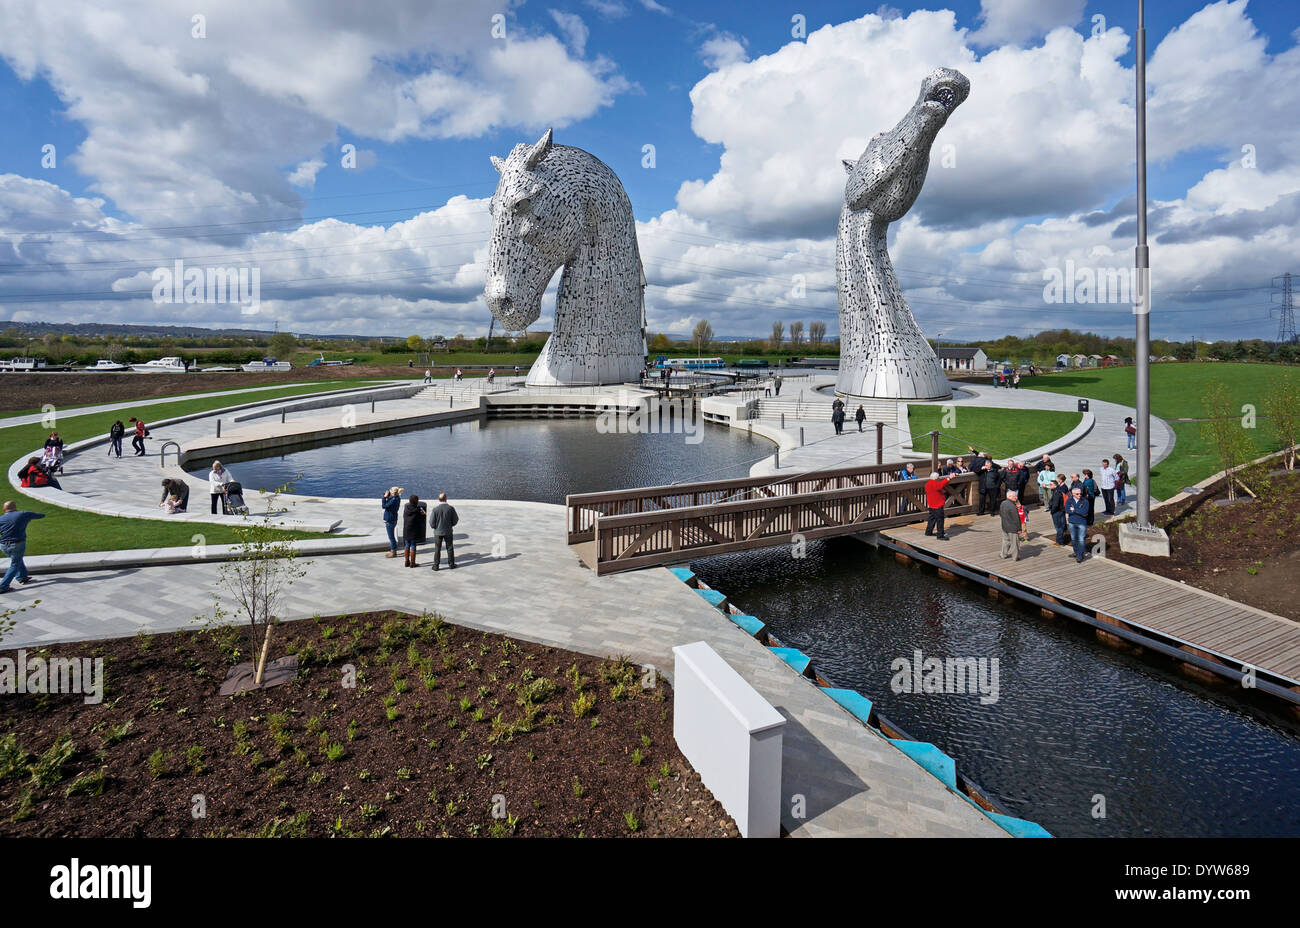 The Kelpies at The Helix beside the entrance to the Forth & Clyde canal from River Carron Falkirk Scotland - Stock Image